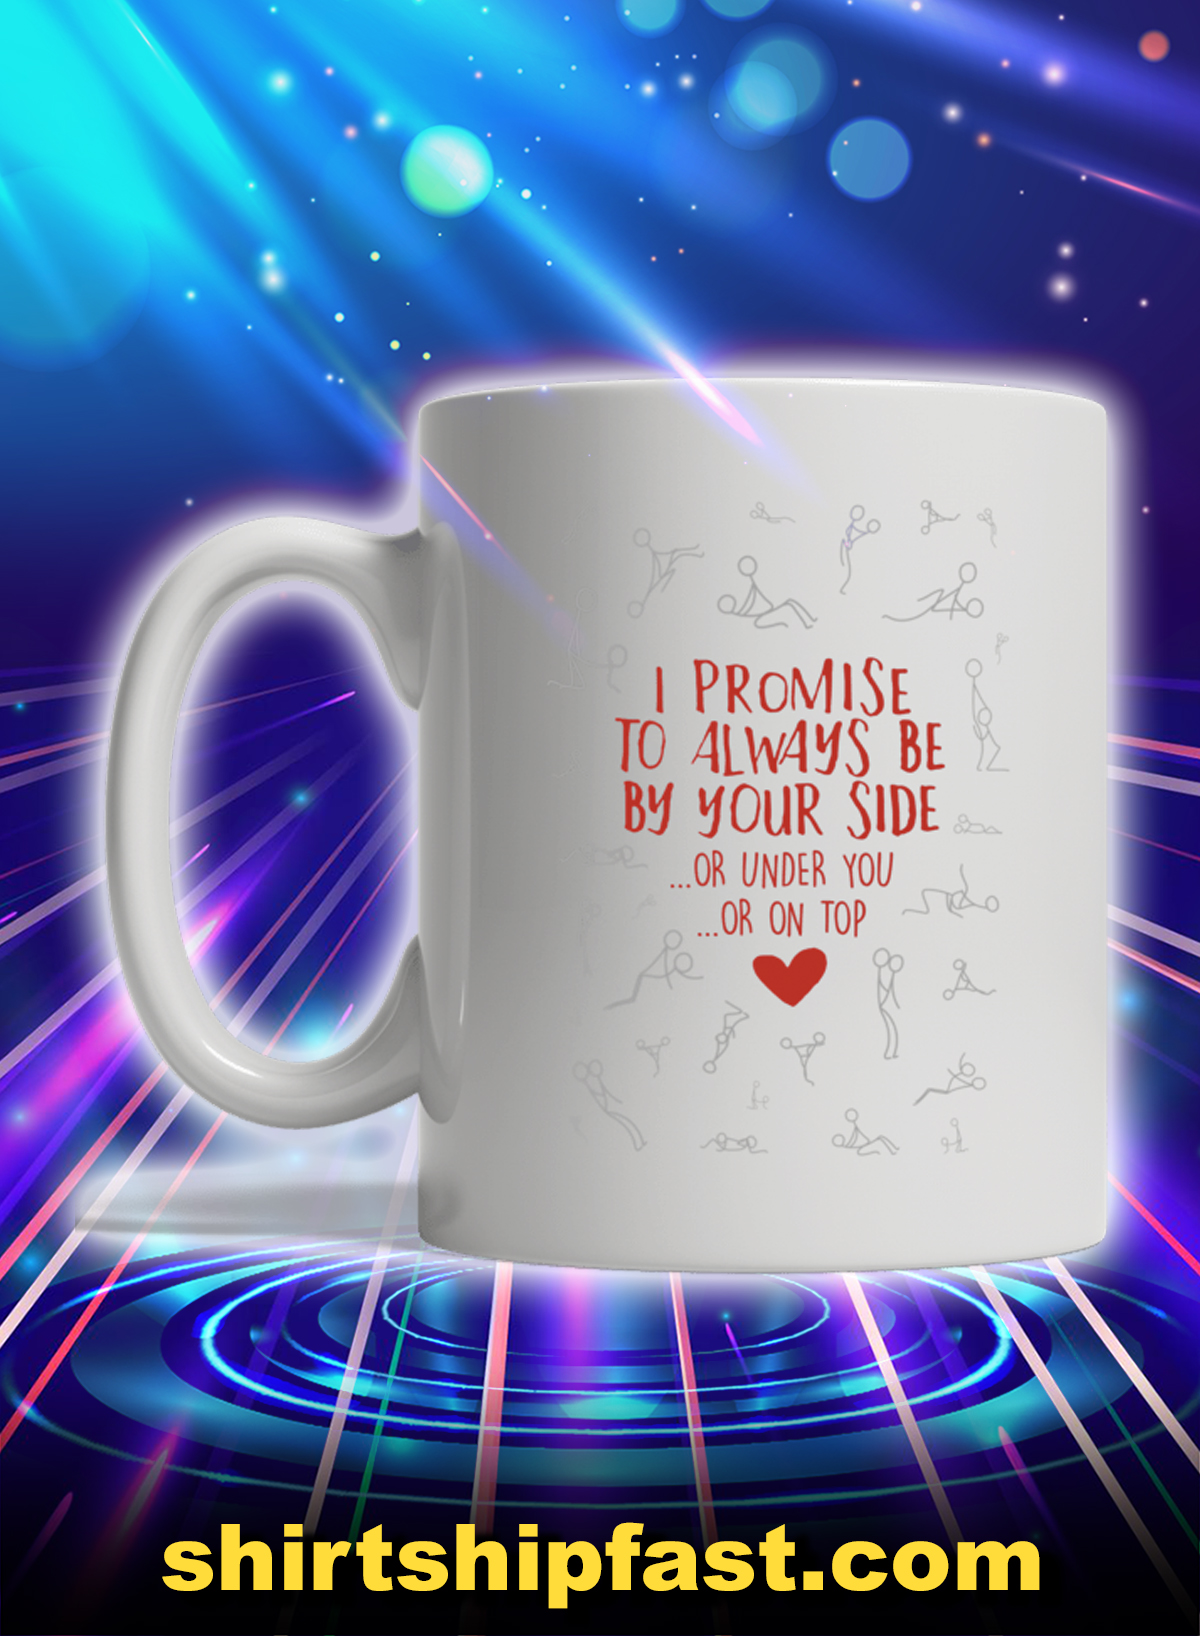 I promise to always be by your side or under you or on top mug - Picture 1